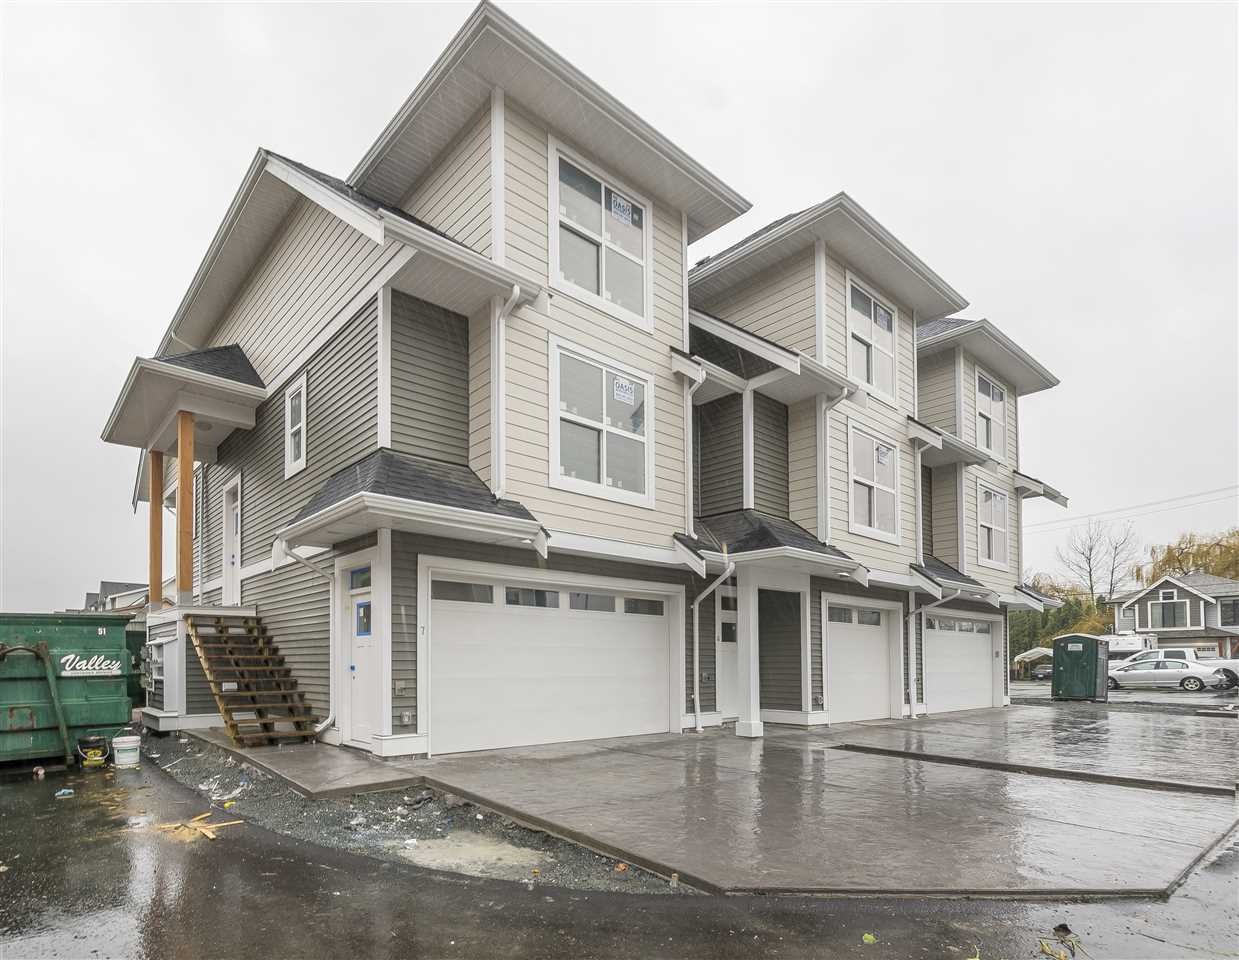 One of the nicest townhome complexes on the market! 11 units in total make this a quiet and cozy place to live. All units are complete with high-end finishing, full Stainless Steel appliance package and Modern color choices. Hardy Plank siding, 9' ceilings on the first and main floors, Community Garden and Childrens park private in complex. West side of Chilliwack, located near Prospera Centre, Hospital, Leisure Centre, Arts Centre, Skate park and Shopping. Options for Built in vac, Central Air Conditioning and Barbeque Box. Estimated completion for November 2017.